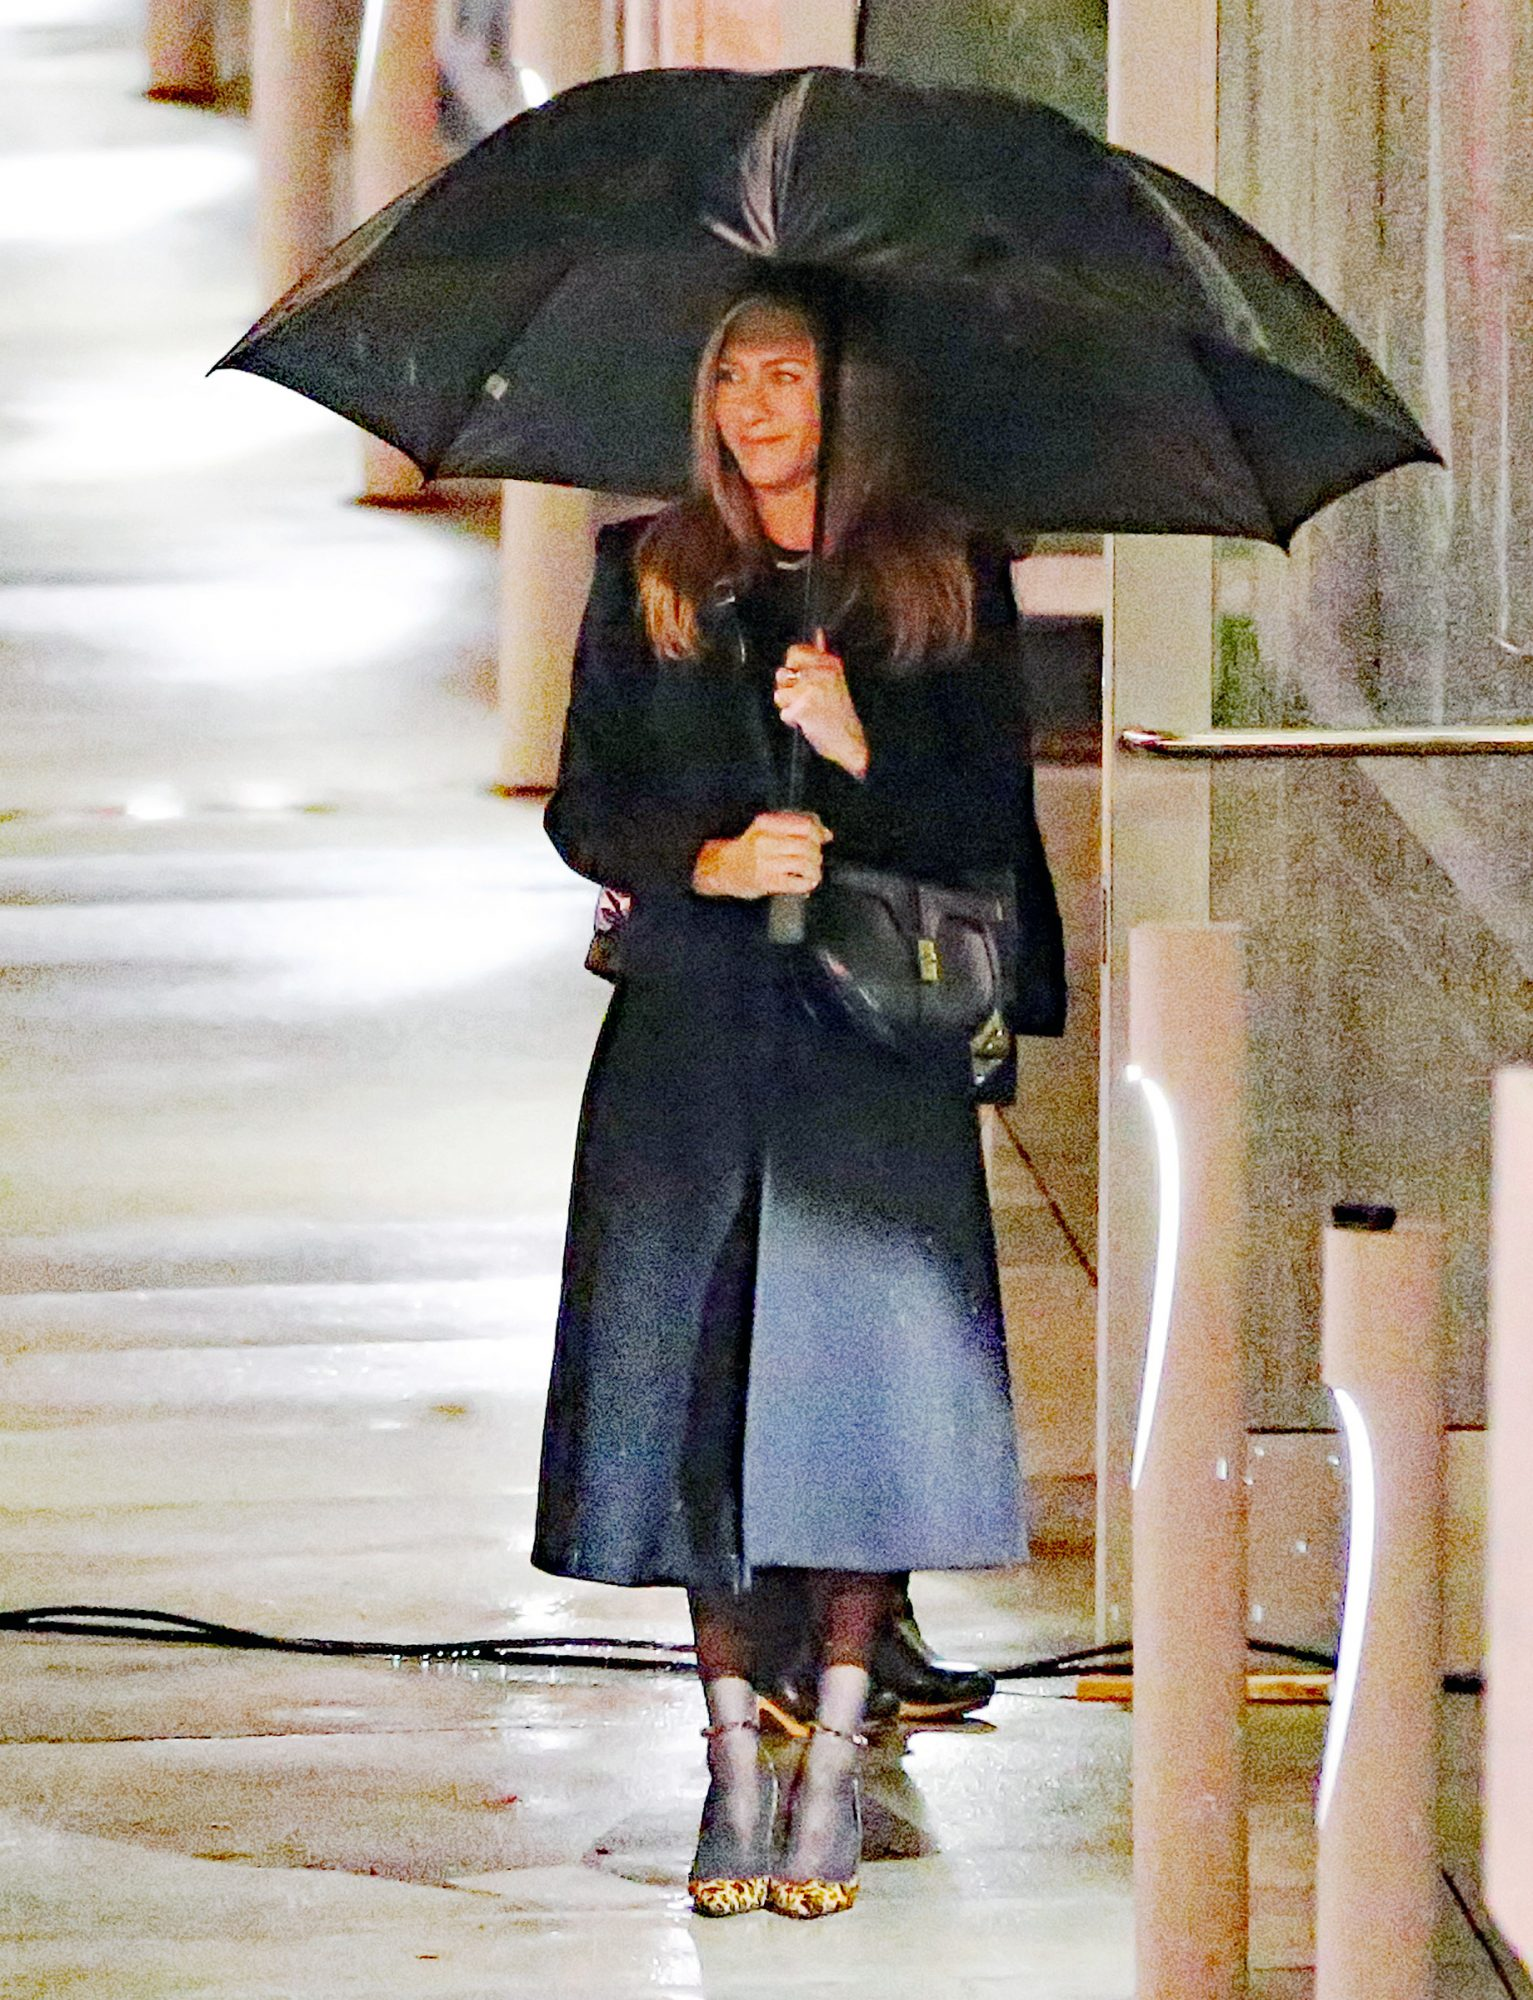 Jennifer Aniston shoots scenes for The Morning Show in the rain. 11 Mar 2021